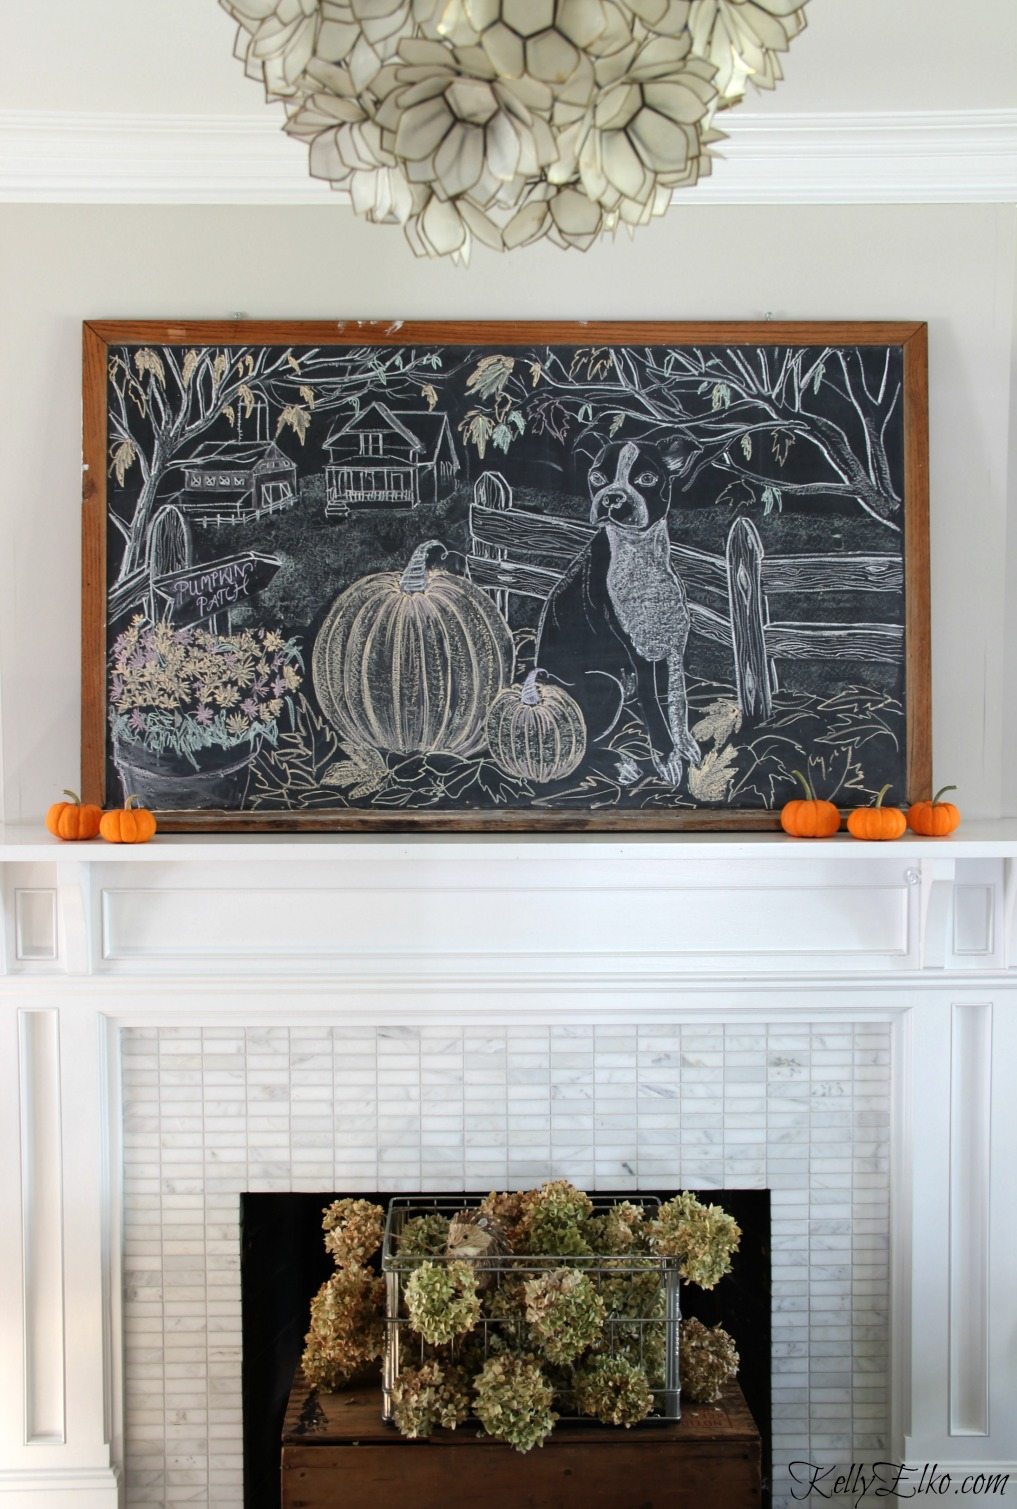 Free Chalkboard Art Printable - such a fun farmhouse fall scene kellyelko.com #printable #freeprintable #farmhousedecor #fallmantel #farmhousefall #manteldecor #vintagedecor #hydrangeas #pumpkins